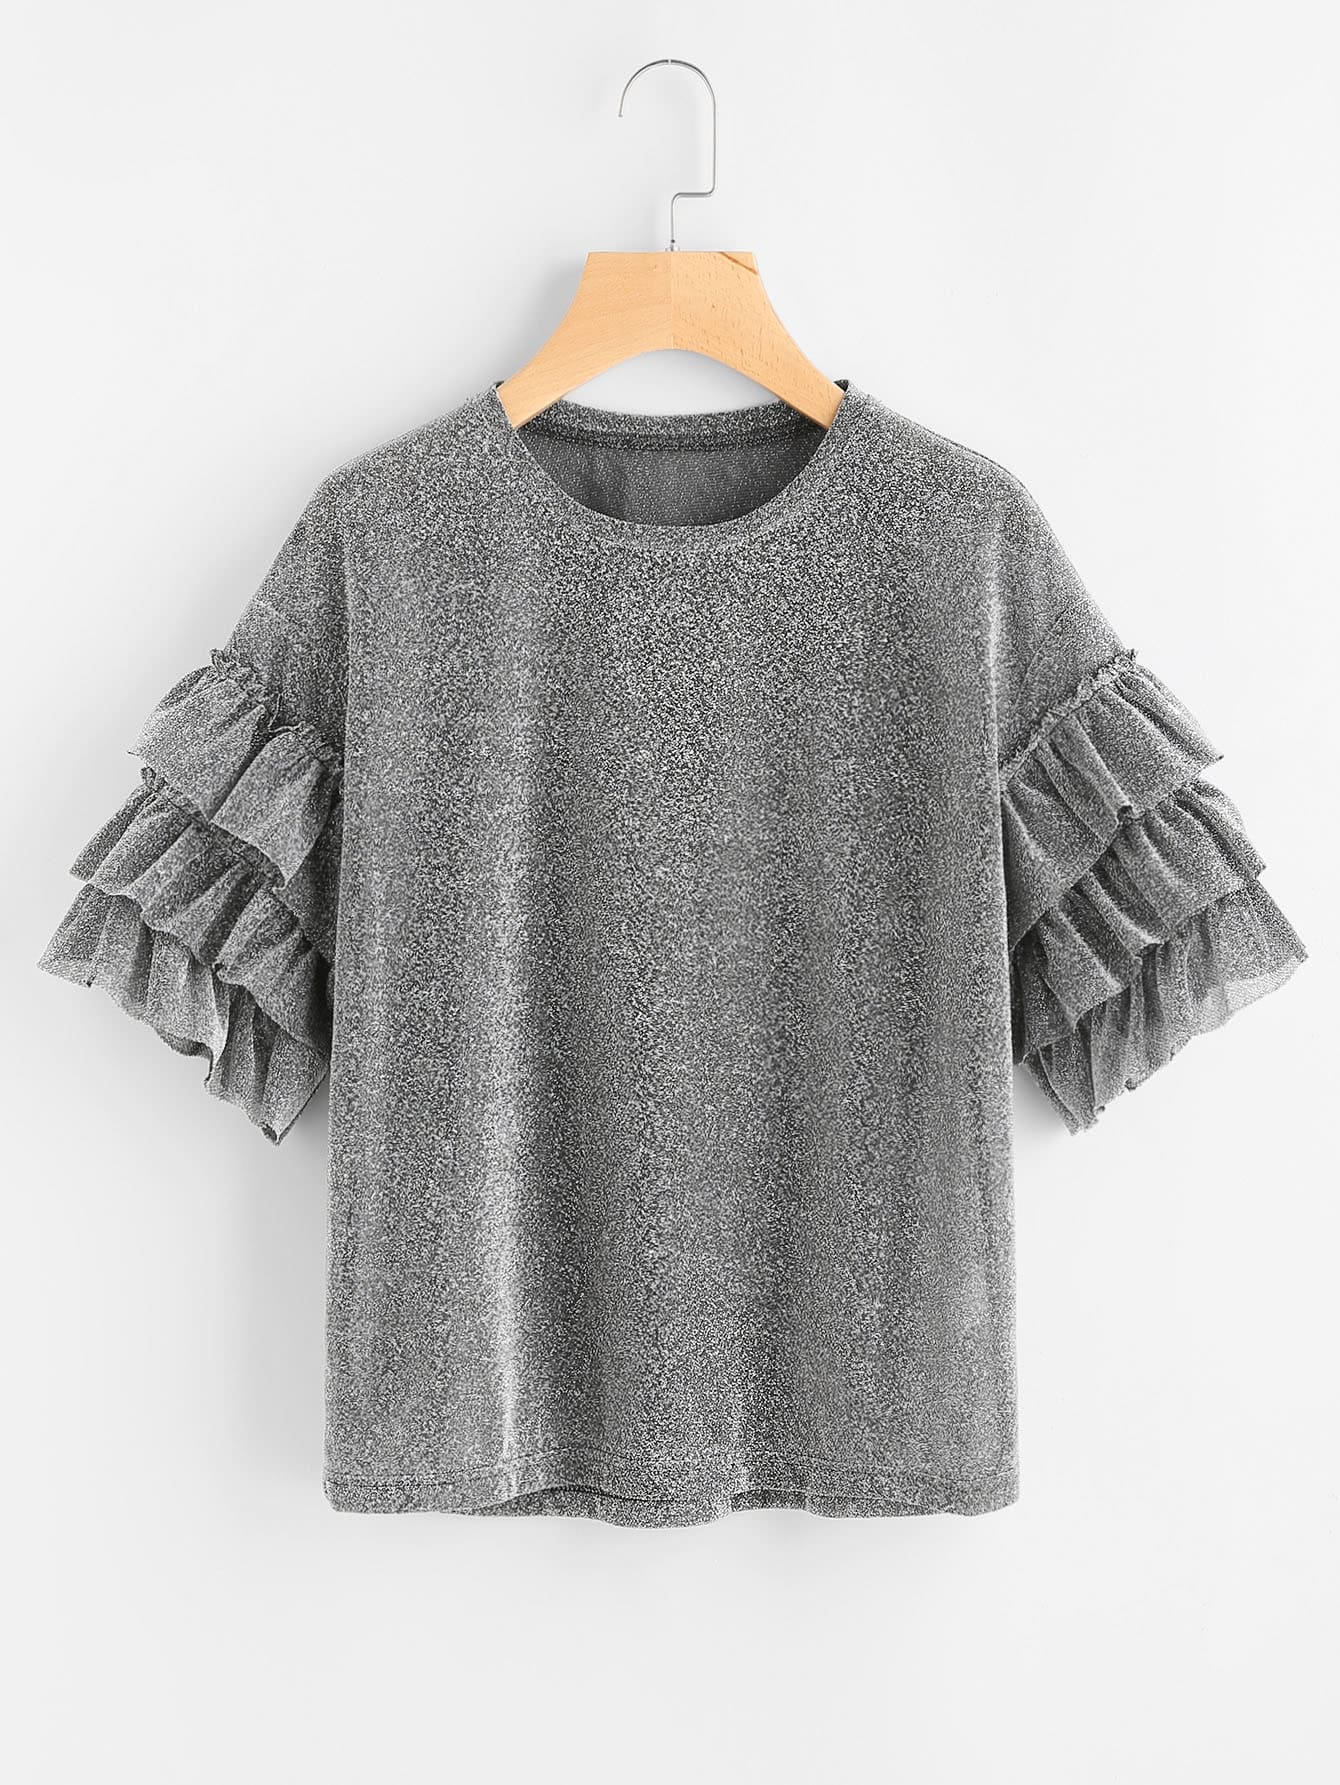 Drop Shoulder Layered Ruffle Sleeve Sparkle Tee pearl detail layered frill sleeve top